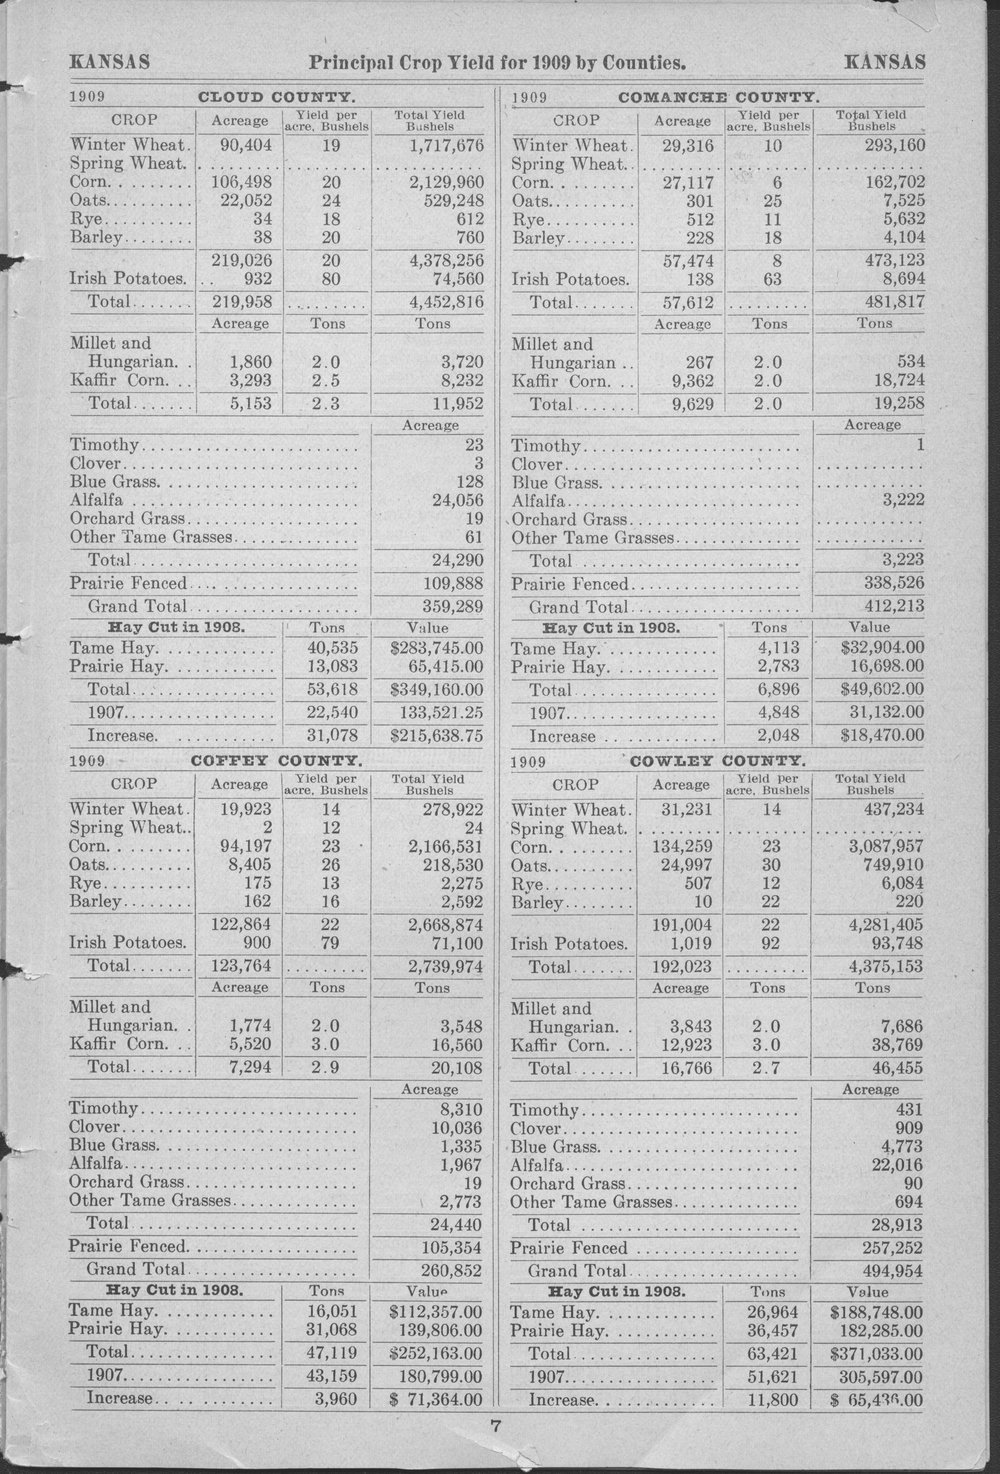 Prinicipal crop yields by counties of Kansas for 1909 - 7